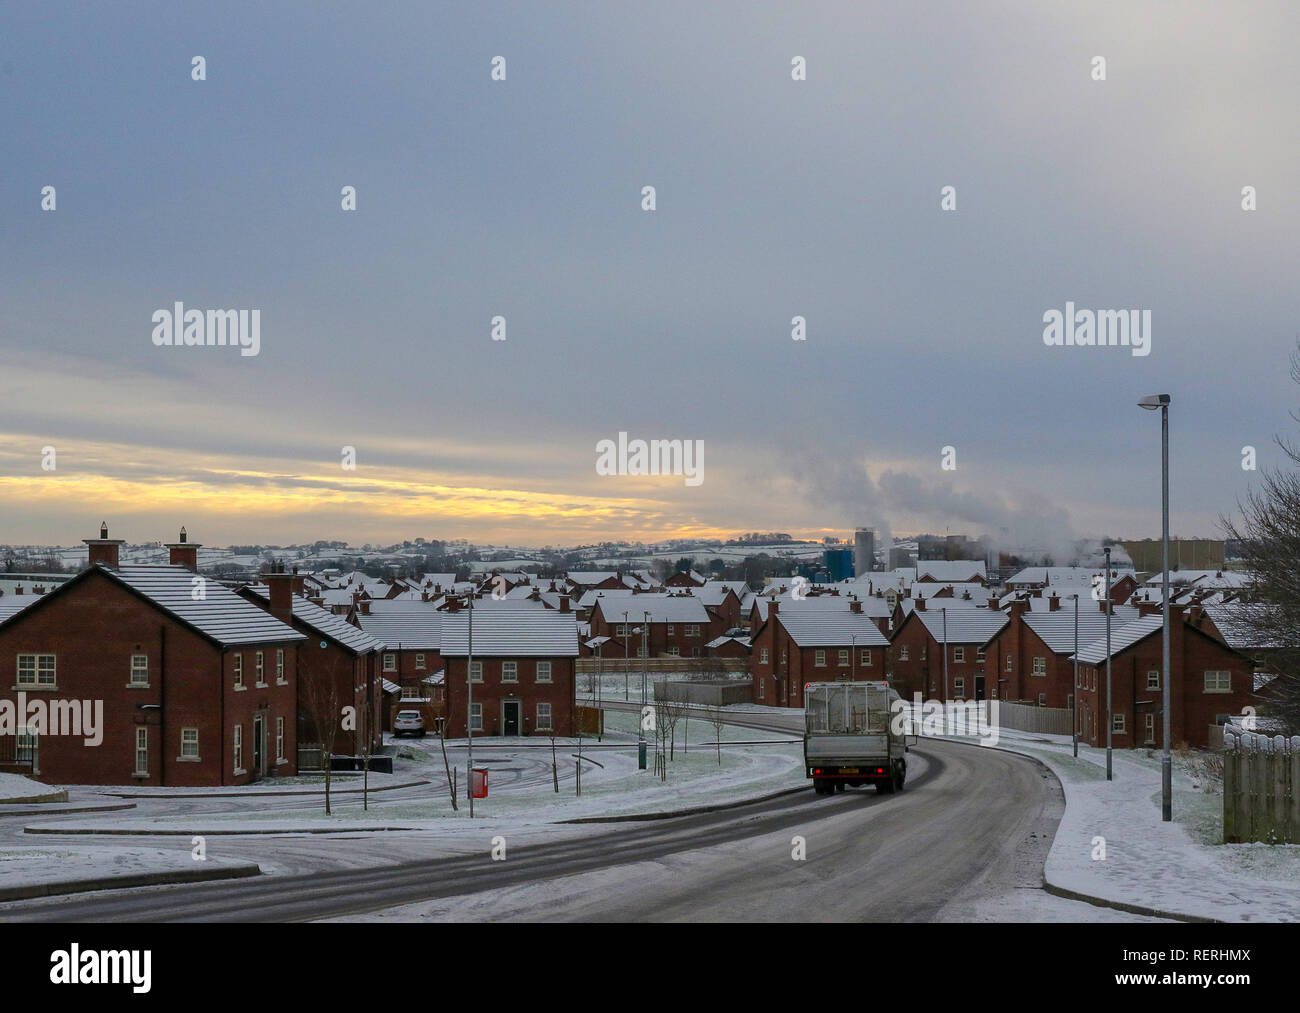 Magheralin, County Armagh, Northern, Ireland. 23rd Jan, 2019. Snow and ice made for tricky driving conditions off main roads. Sun rising in the east of the village beyond the cheese plant. Credit: David Hunter/Alamy Live News - Stock Image